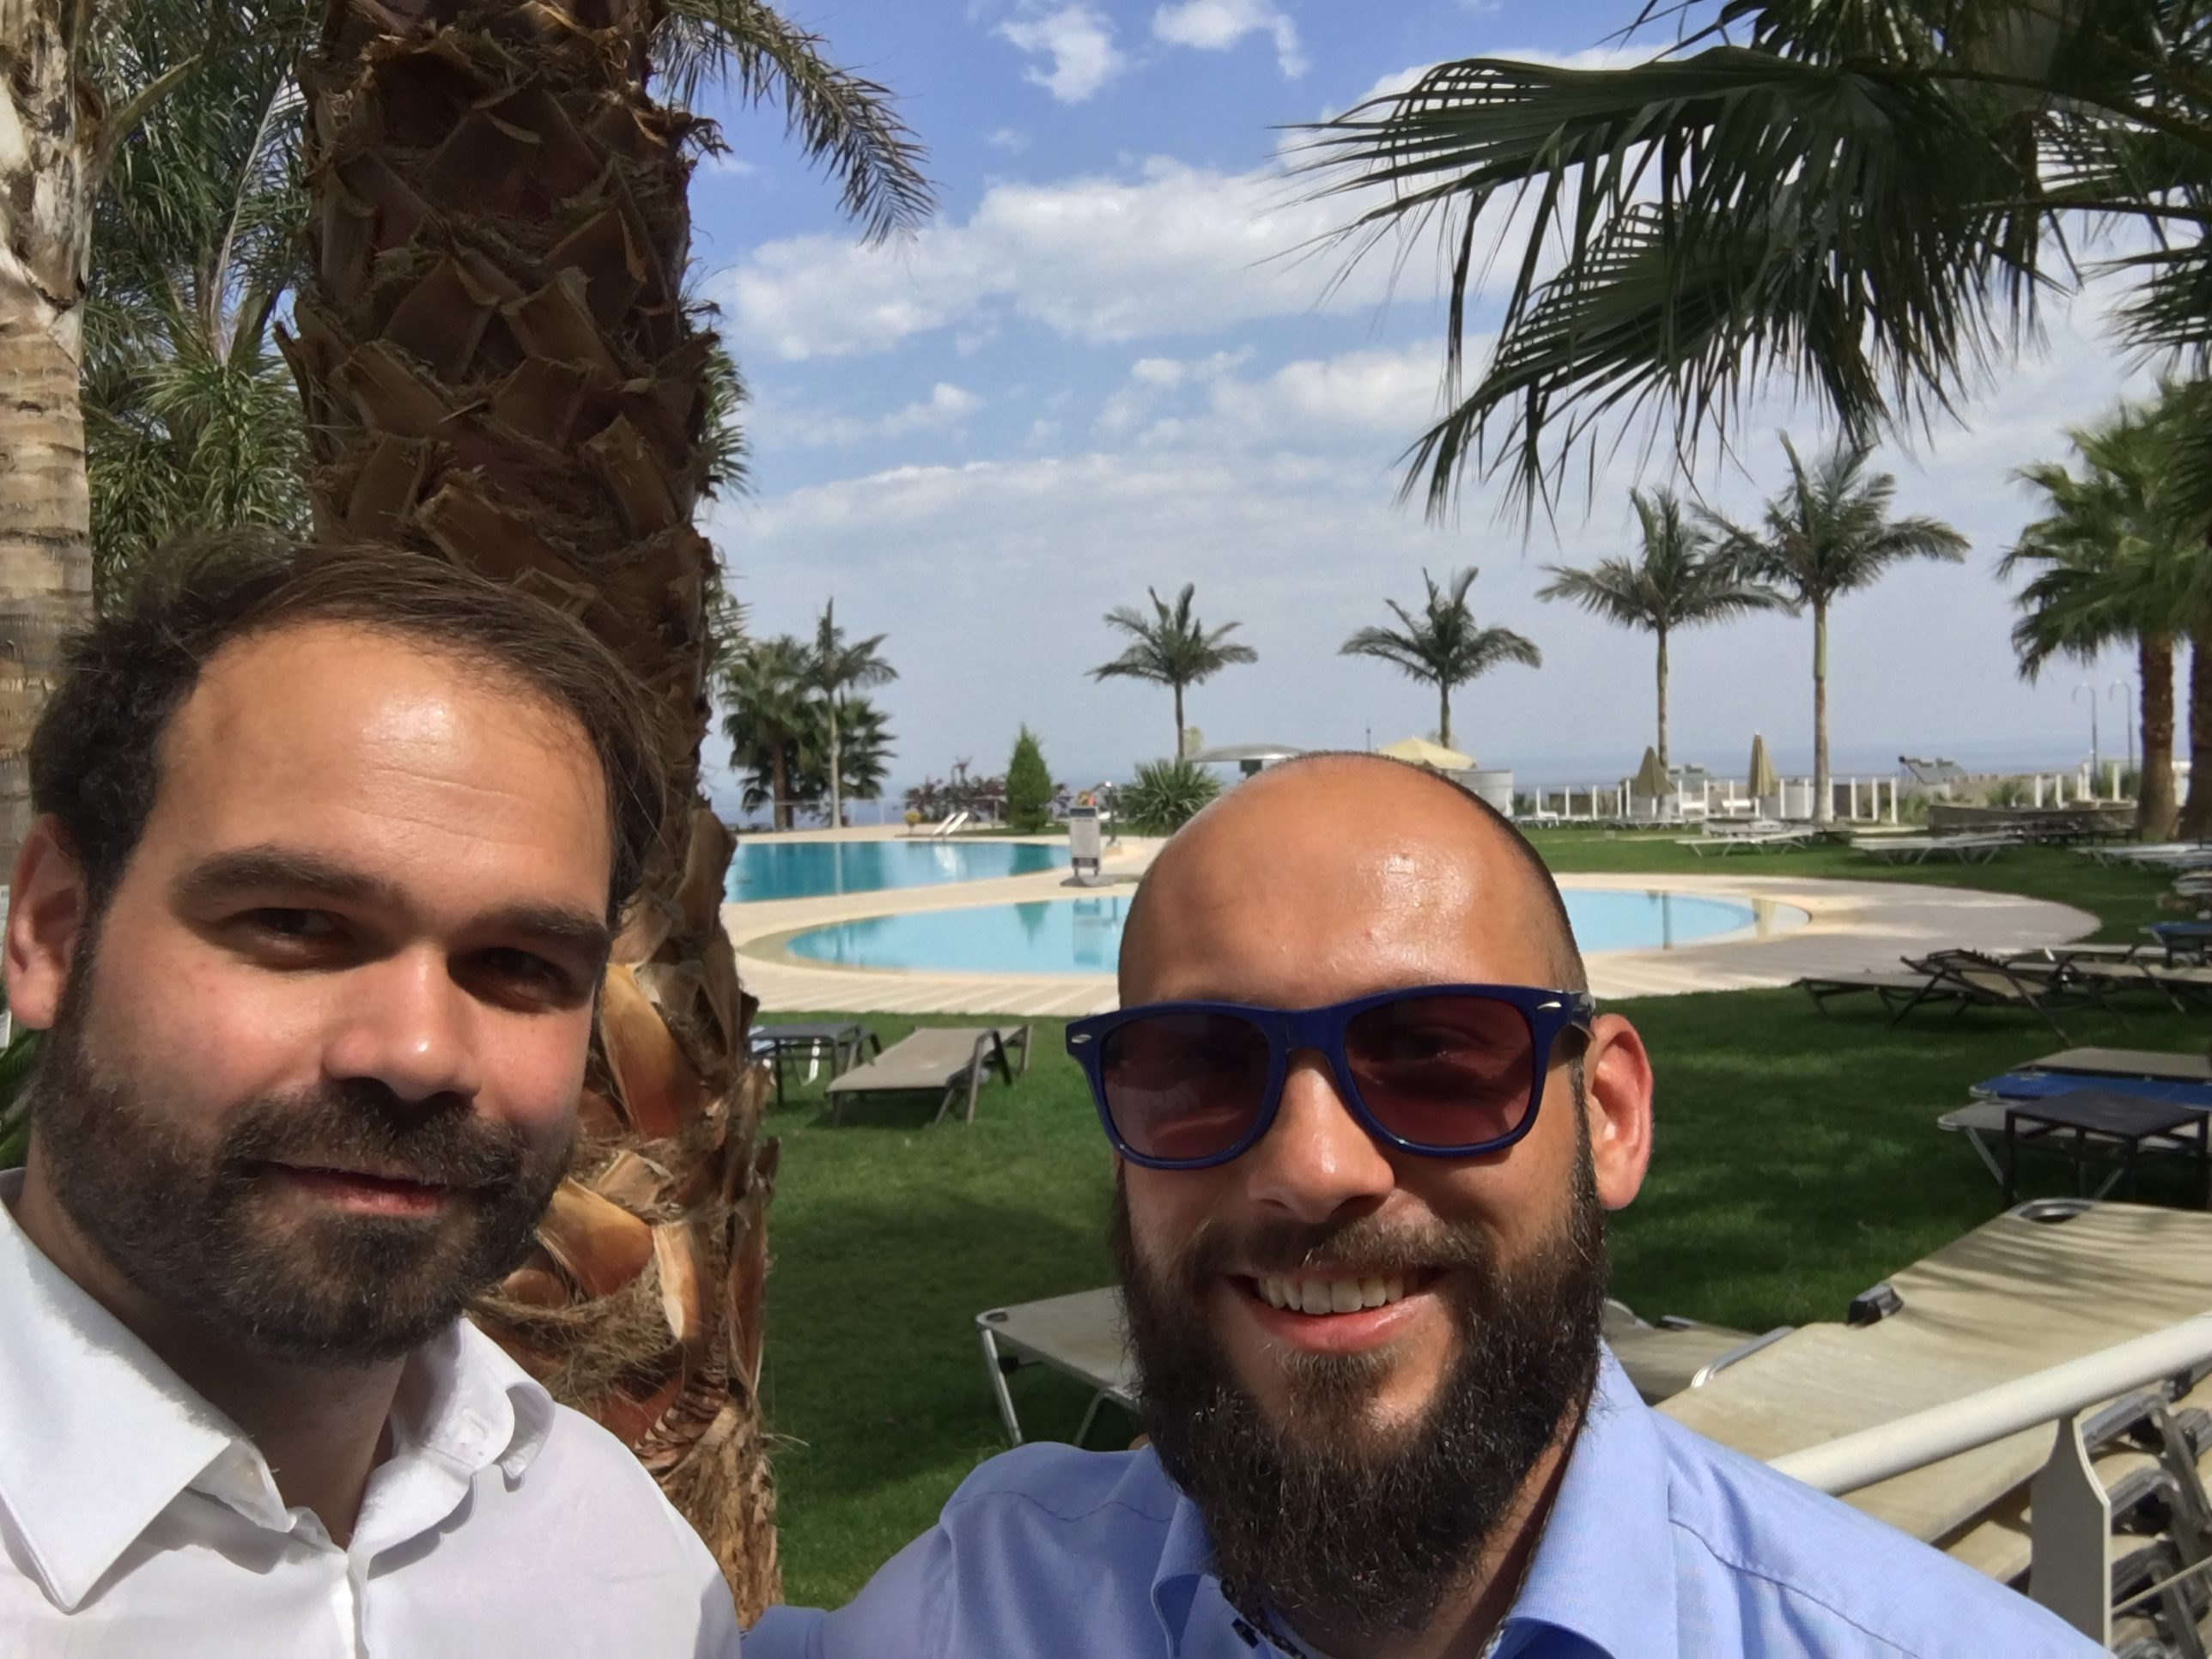 Our qualitative markt study in Crete: Surveying hotels